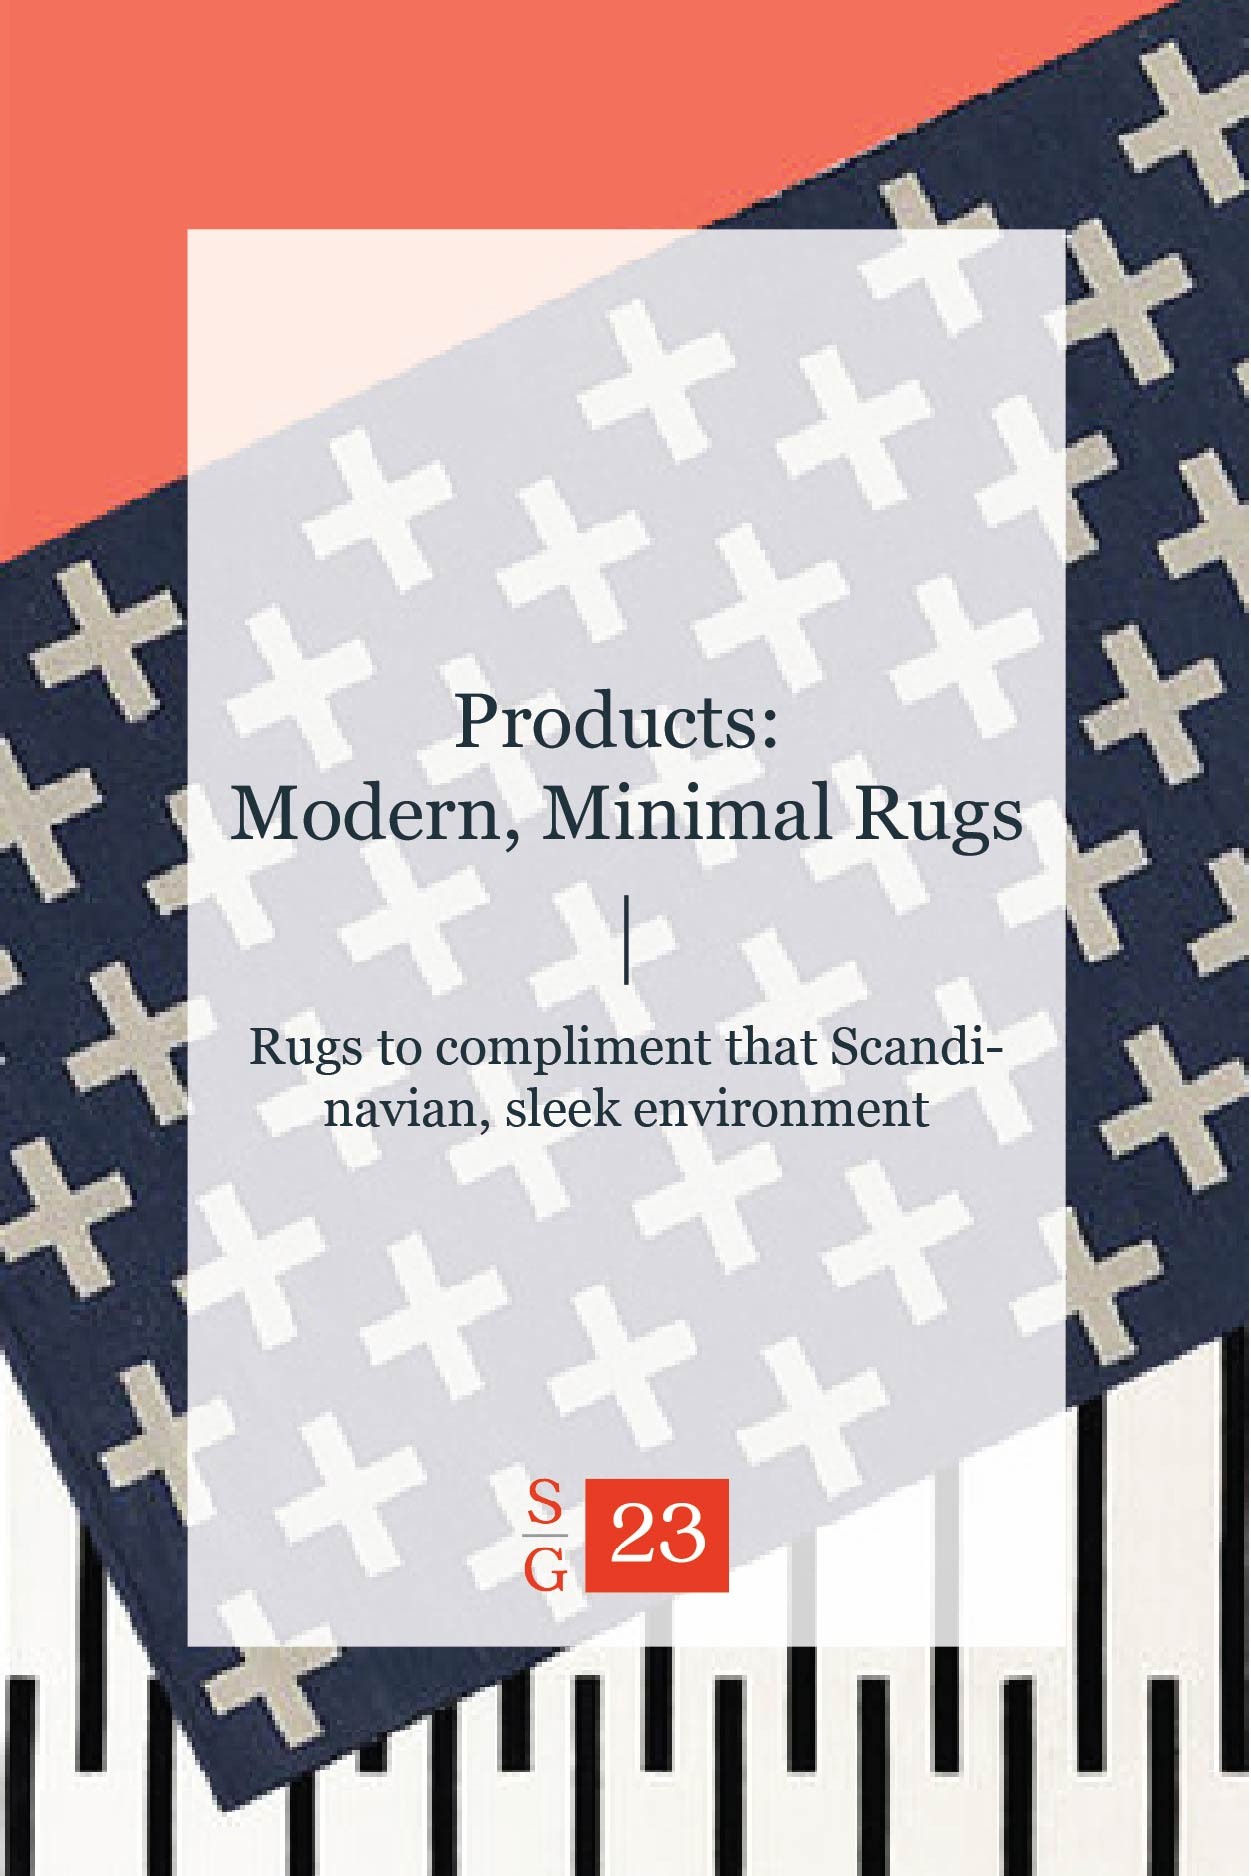 products-rugs-01.jpg